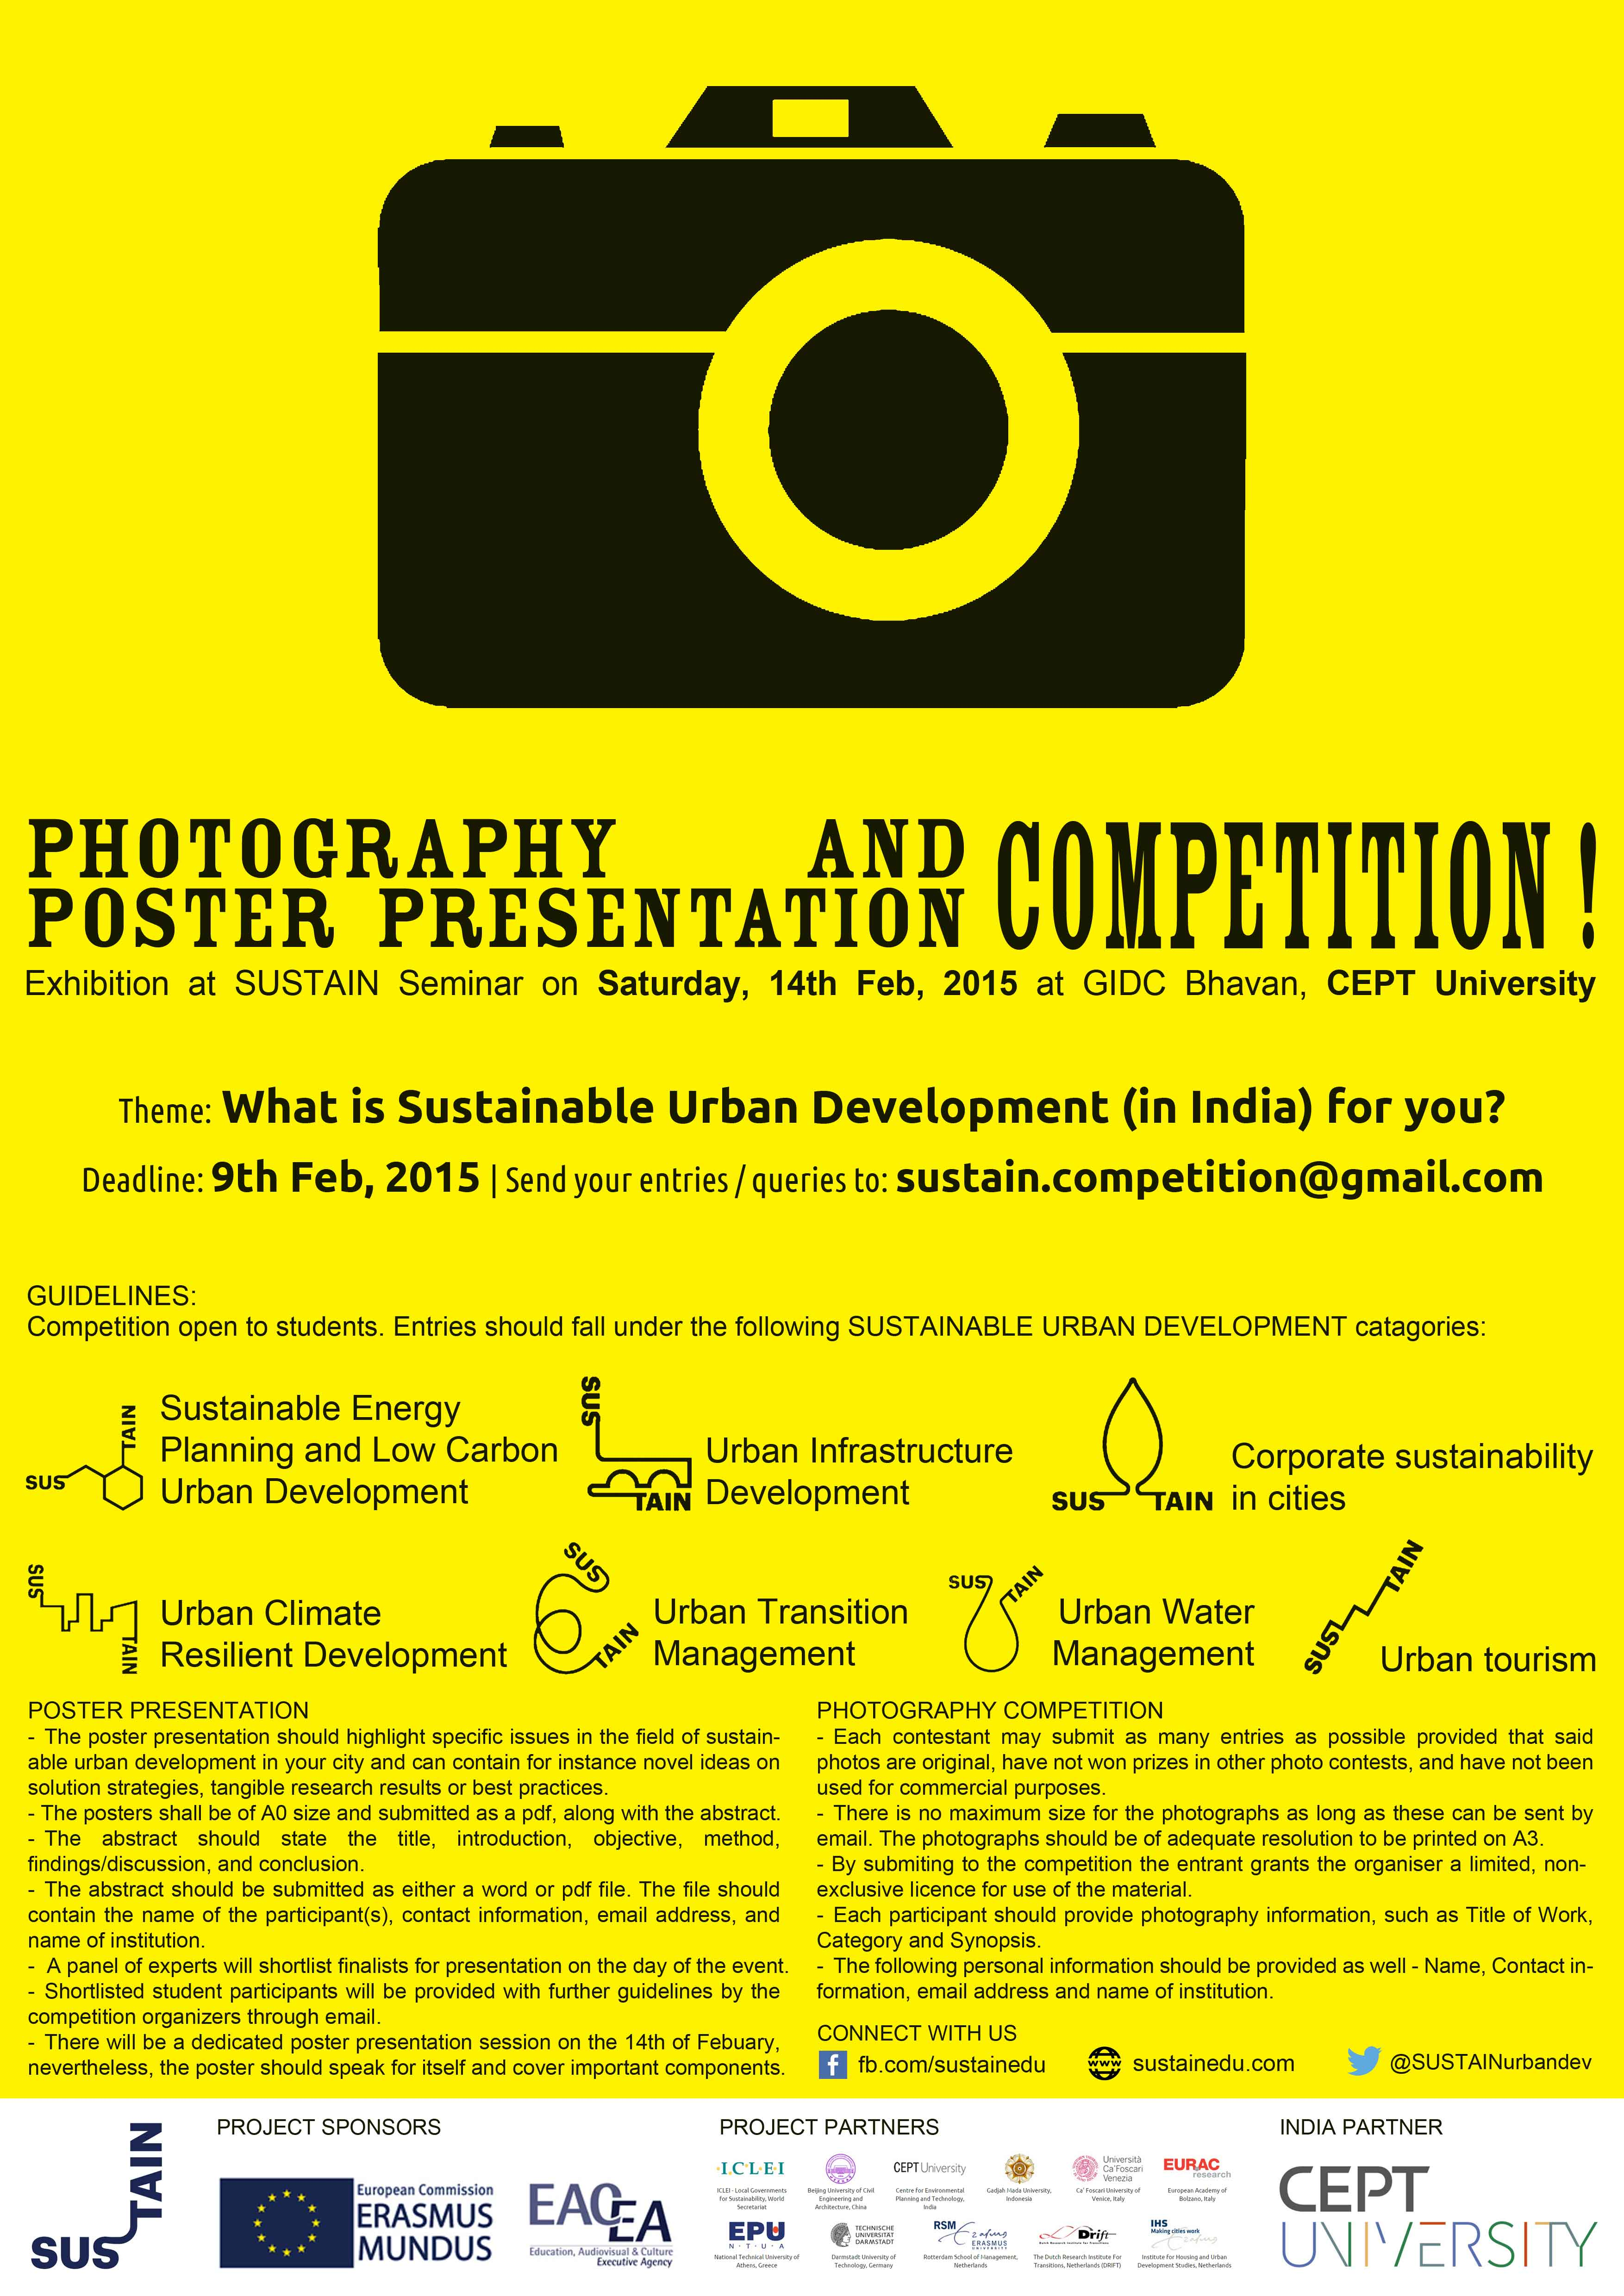 Poster design competition 2015 - Please See The Poster Below For Details Of The Competition